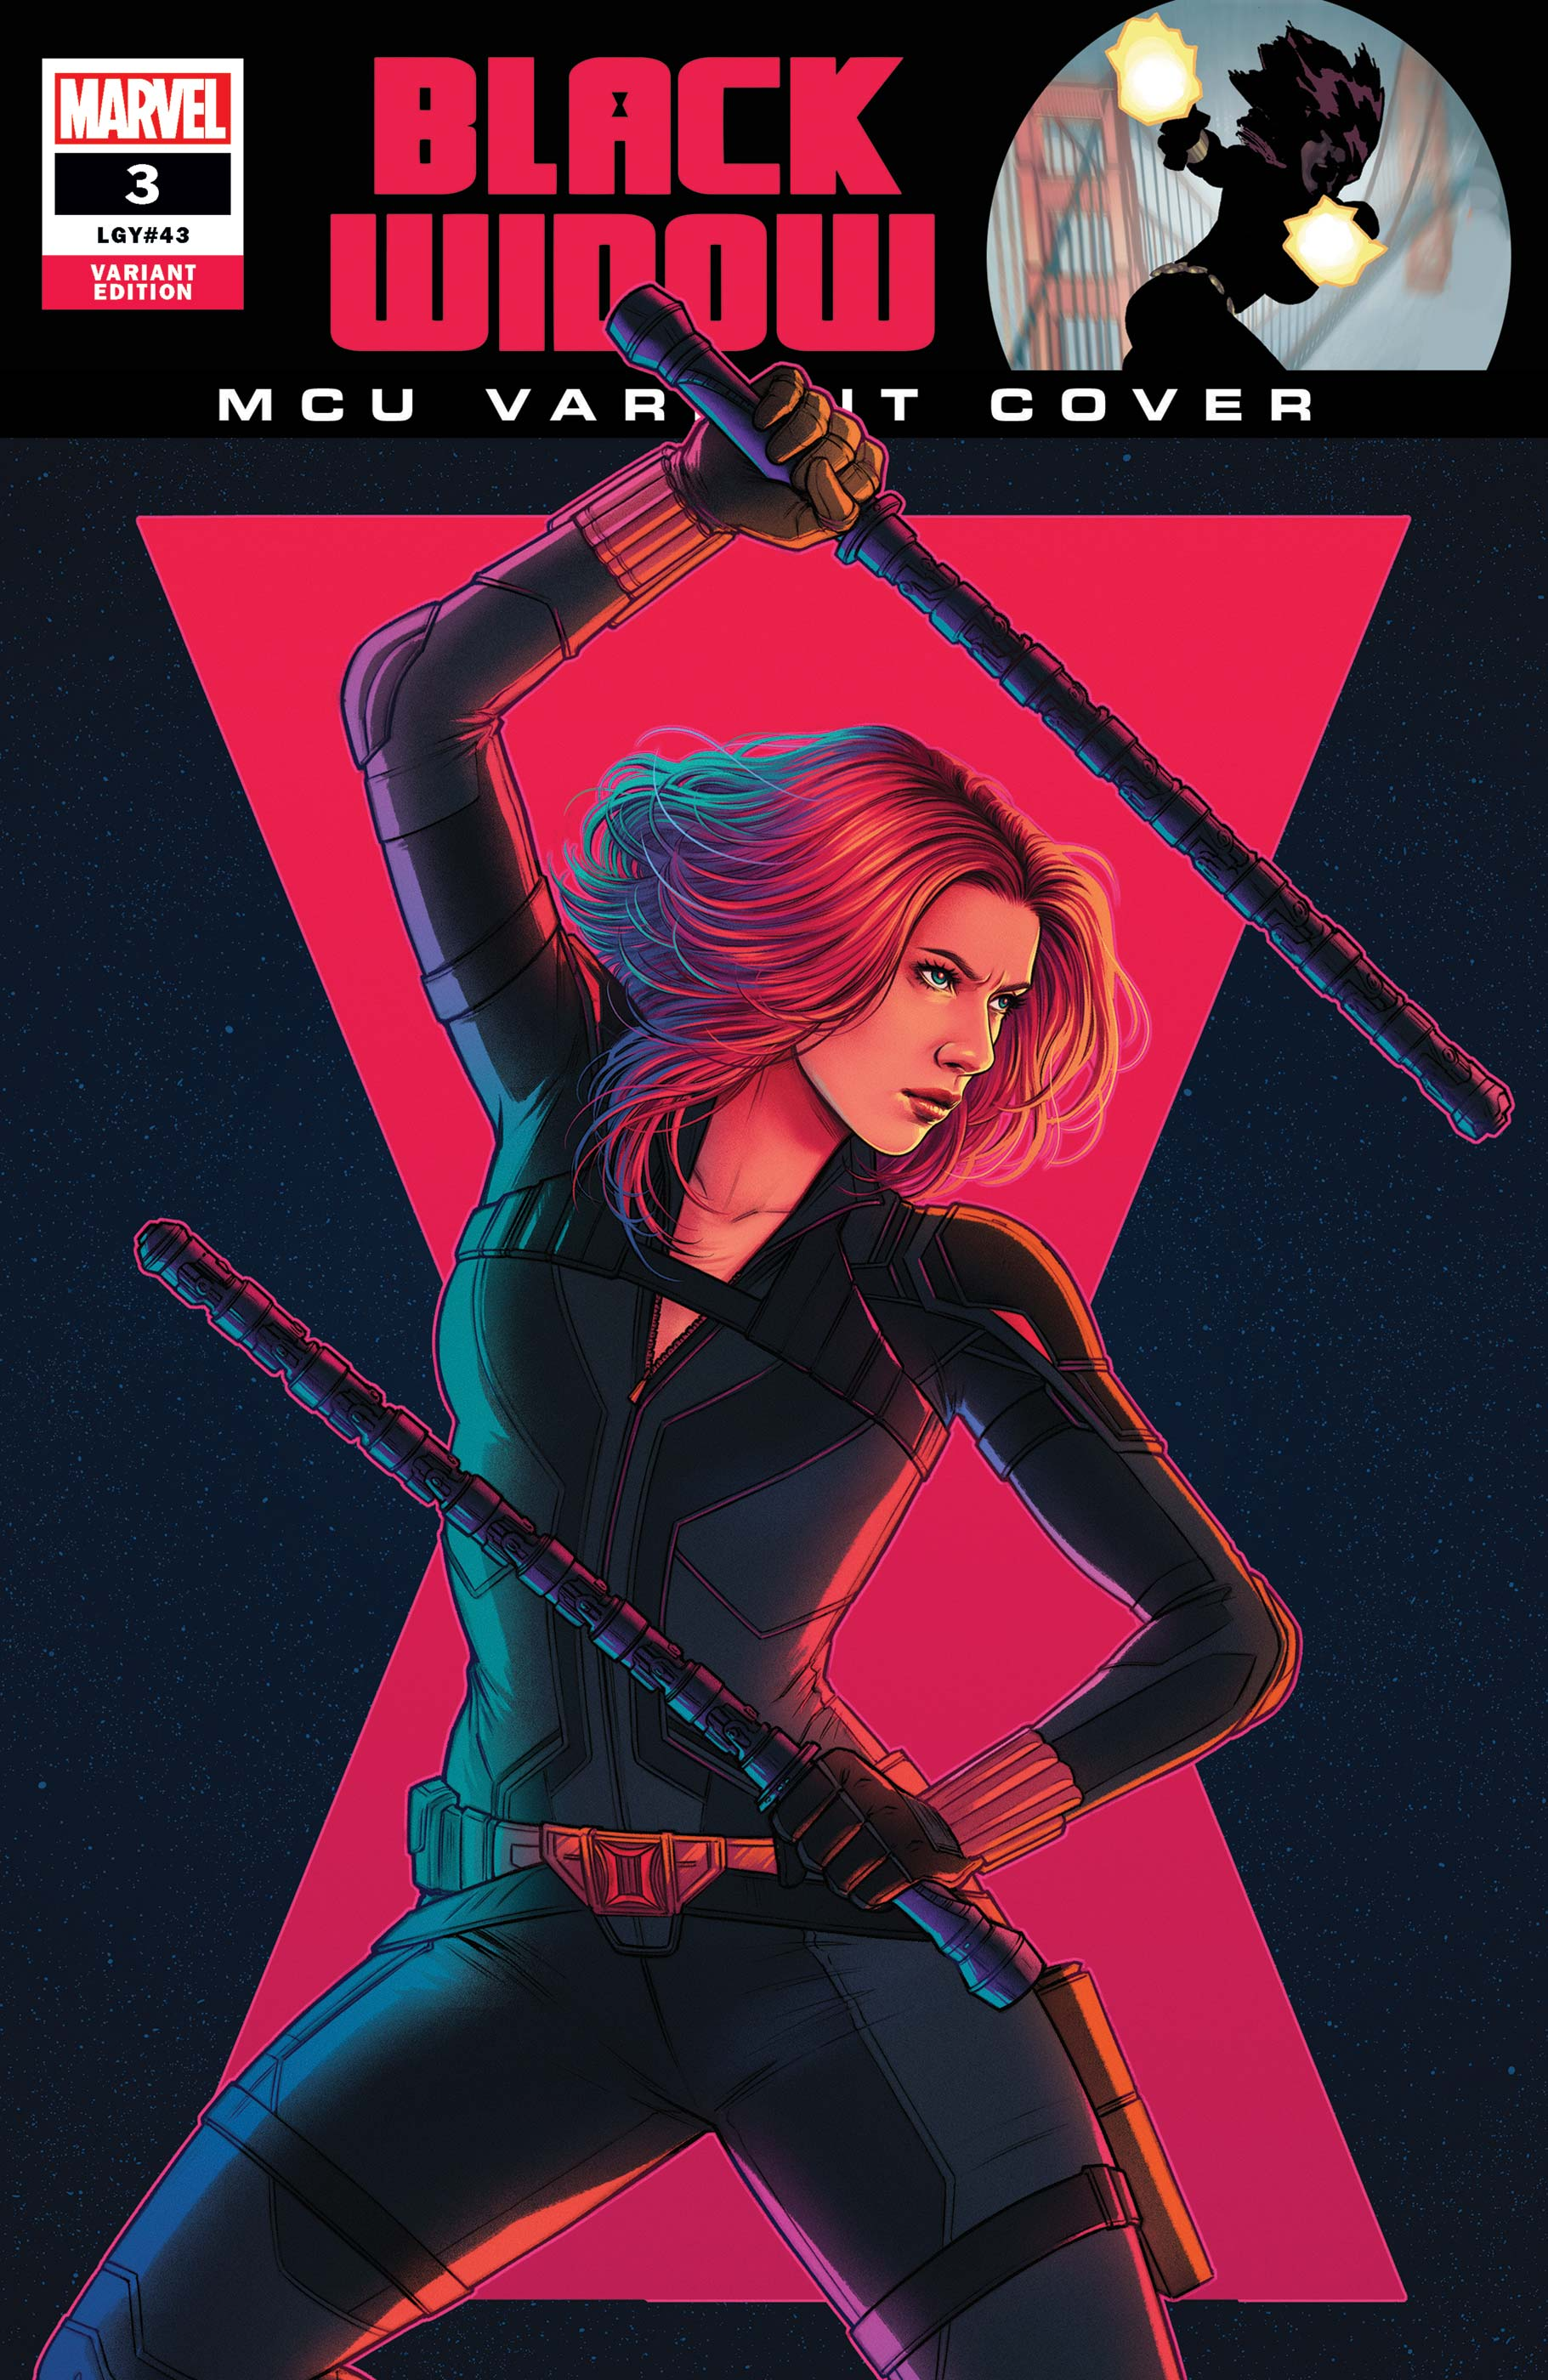 Black Widow (2020) #3 (Variant)